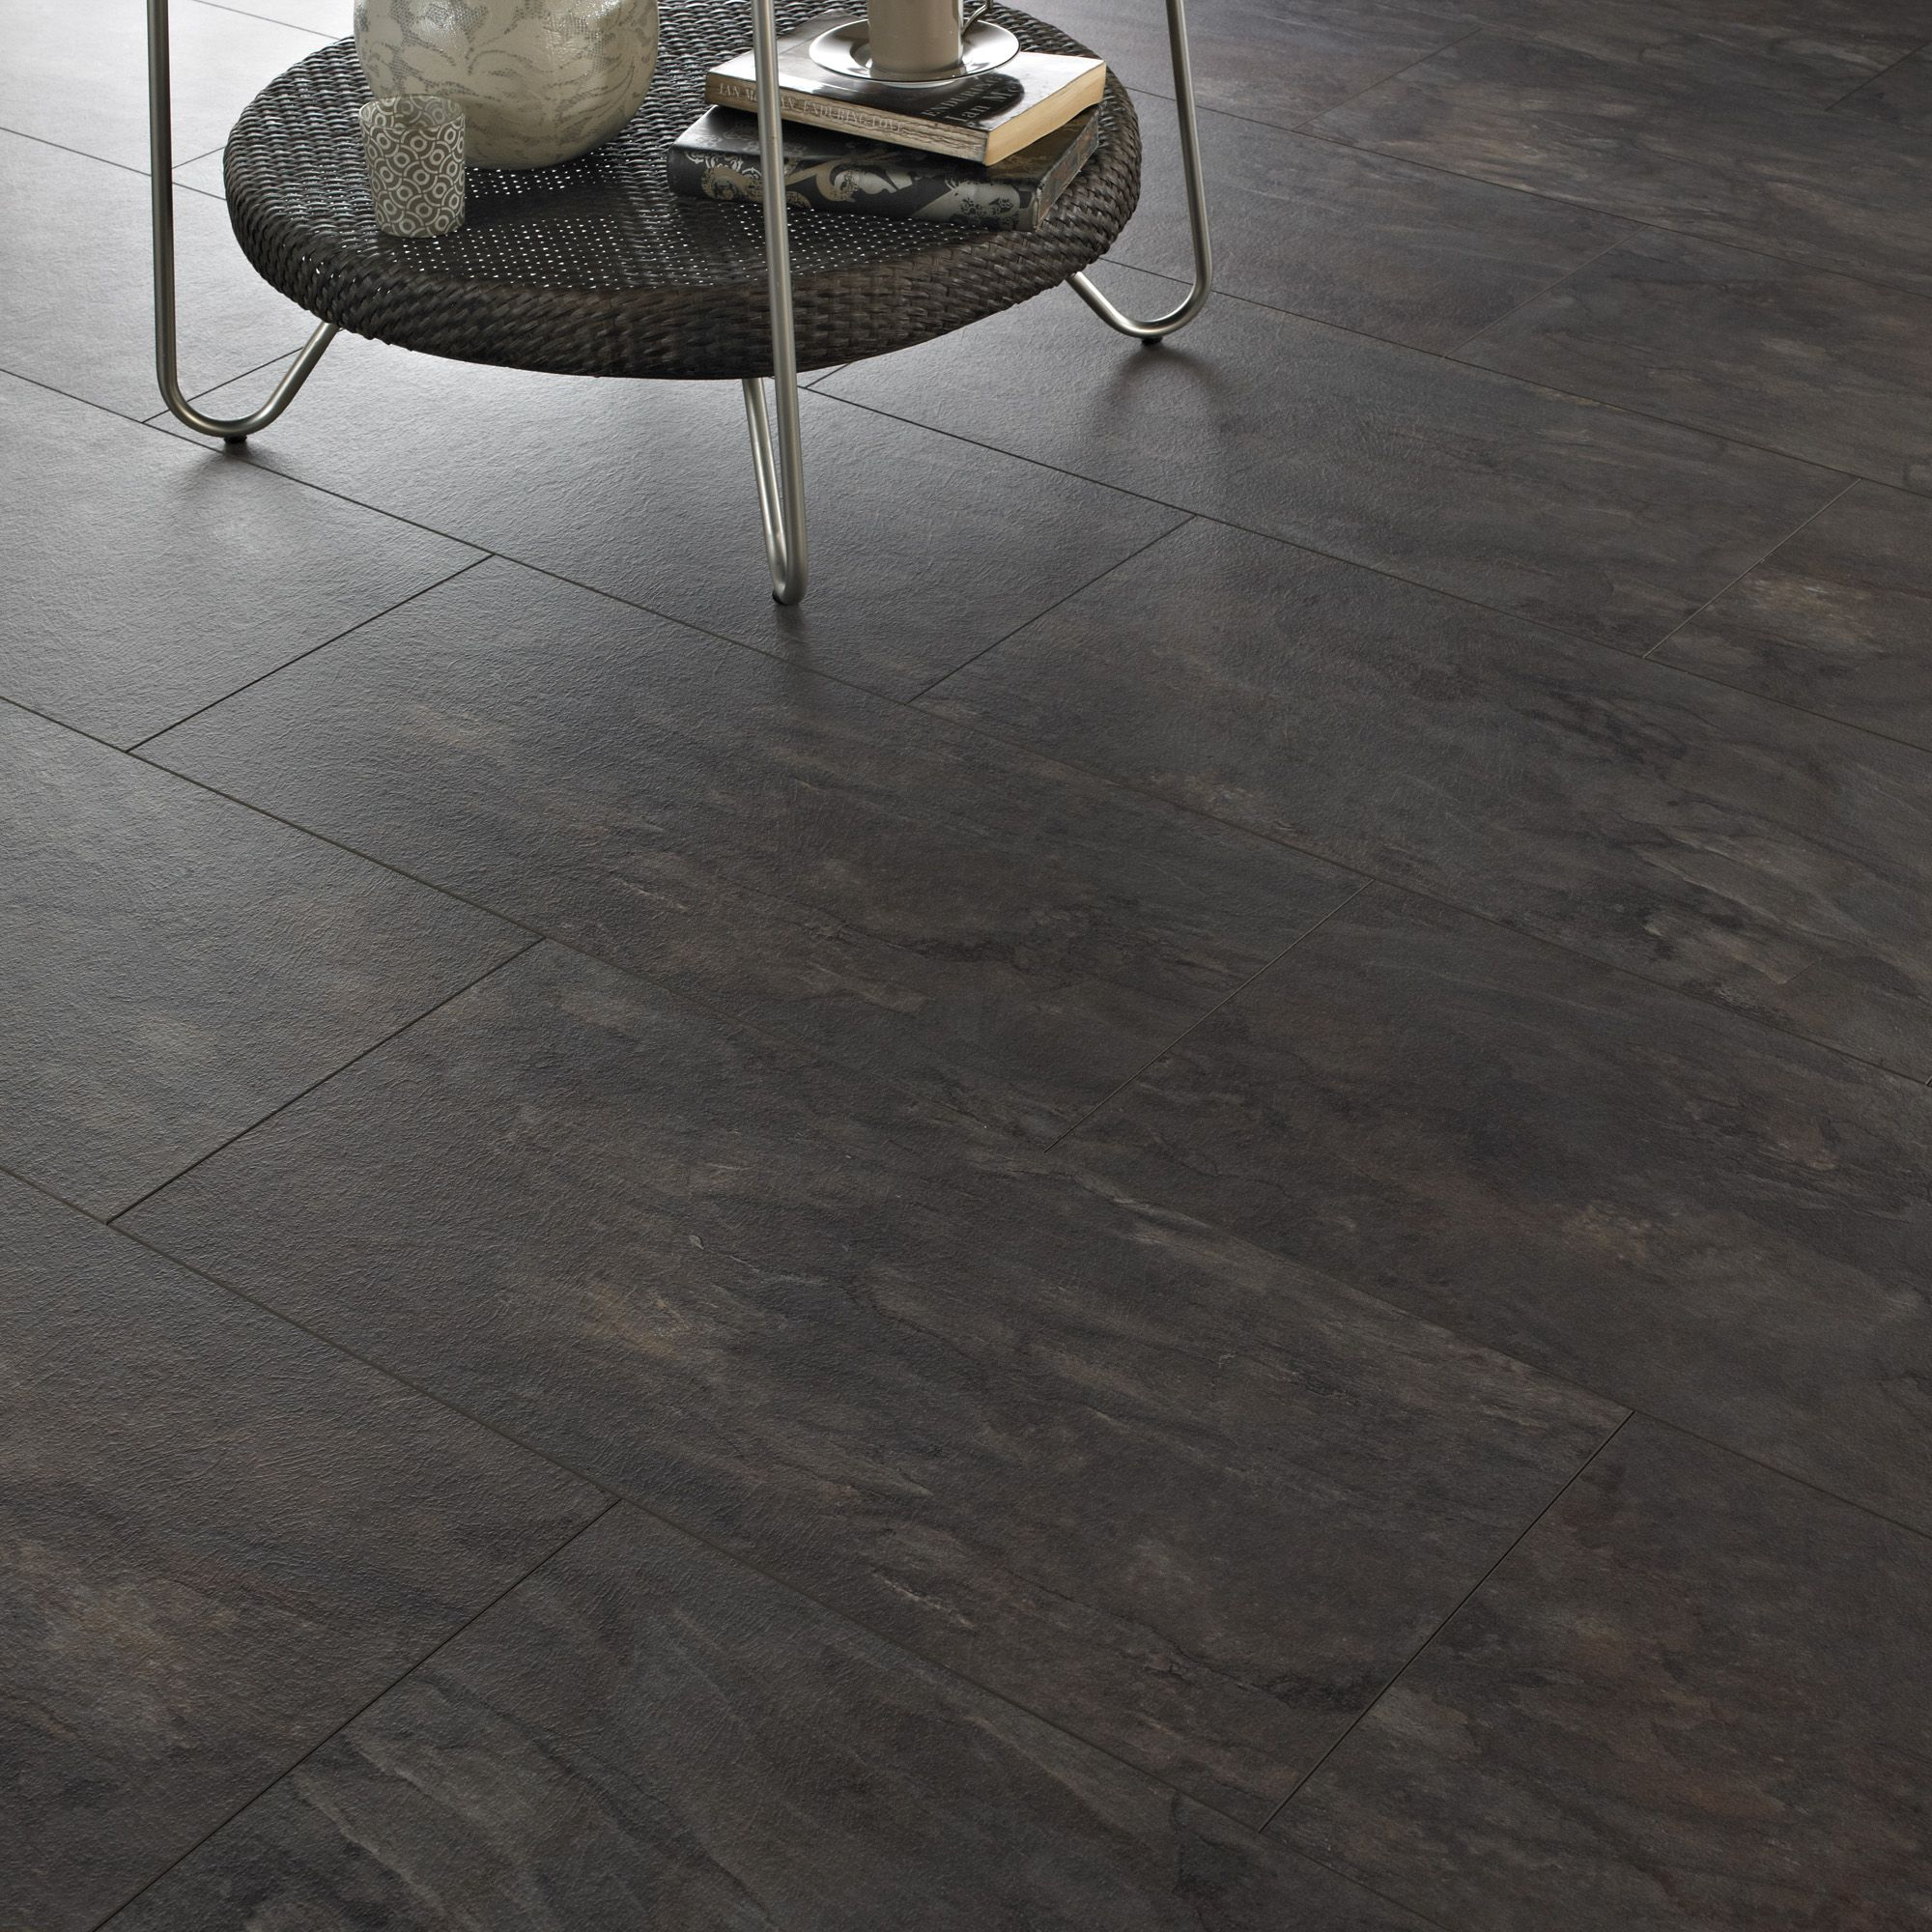 Intermezzo grey slate effect laminate flooring 205 m pack intermezzo grey slate effect laminate flooring 205 m pack departments diy at bq doublecrazyfo Gallery